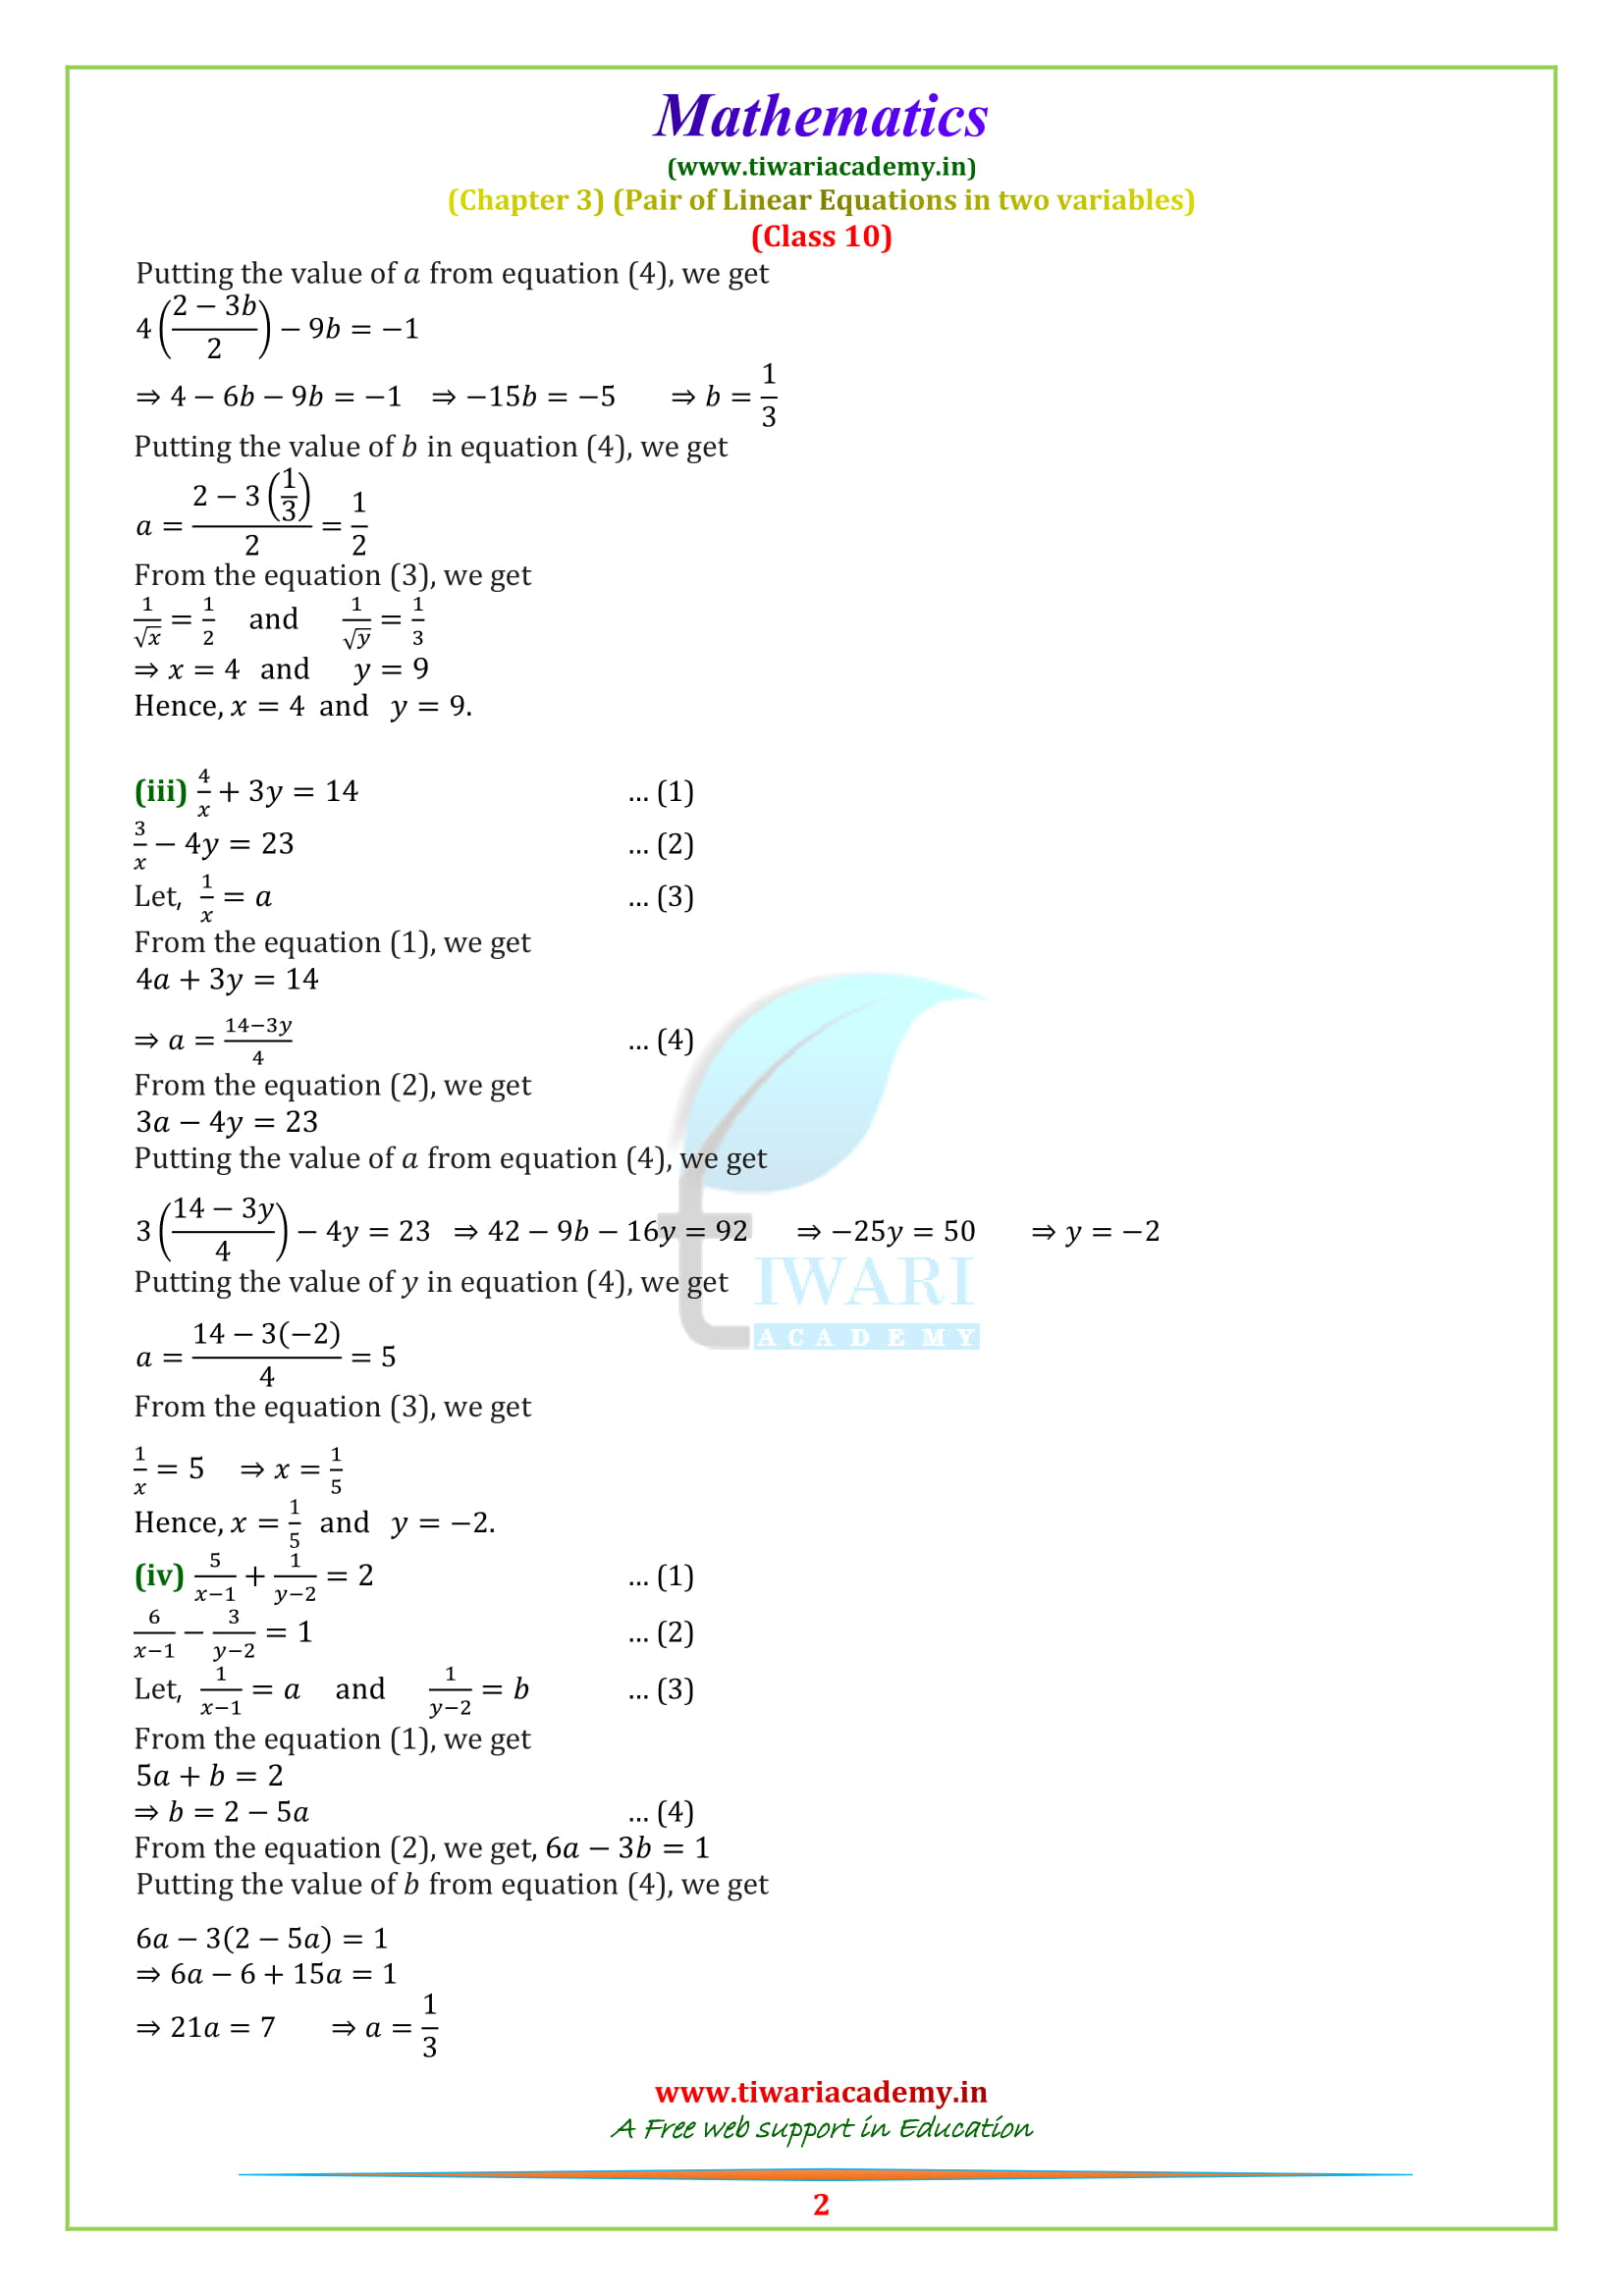 10 Maths exercise 3.6 question 1 solutions